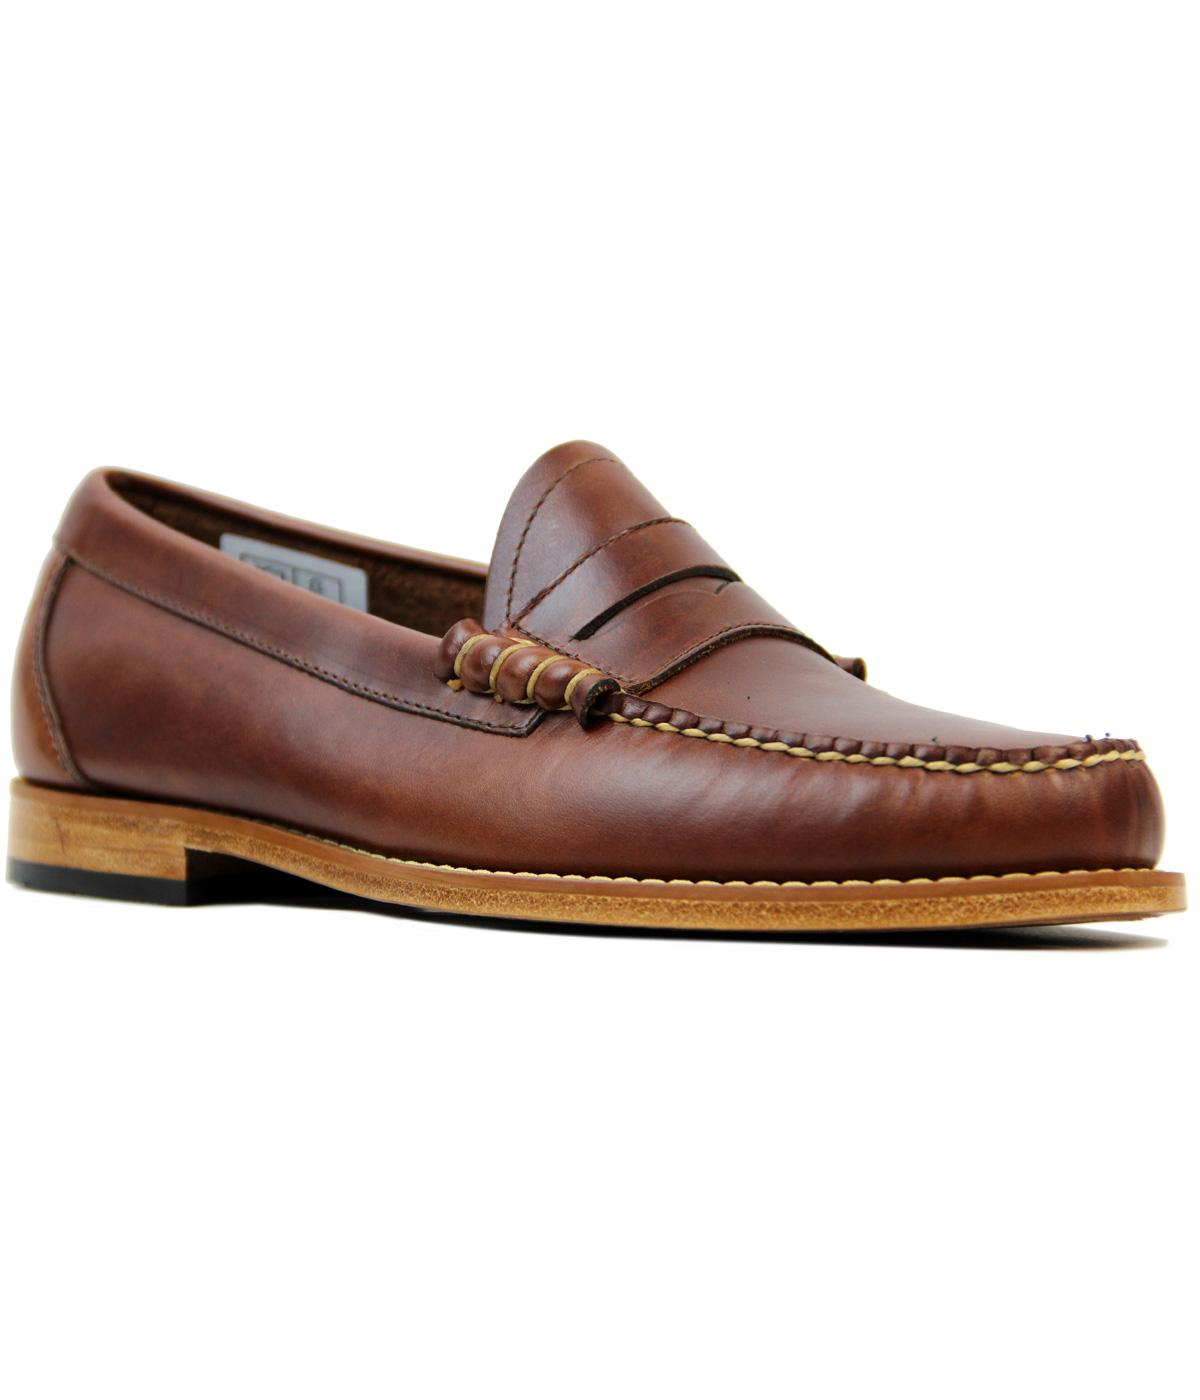 Larson BASS WEEJUNS Mod Pull Up Penny Loafers